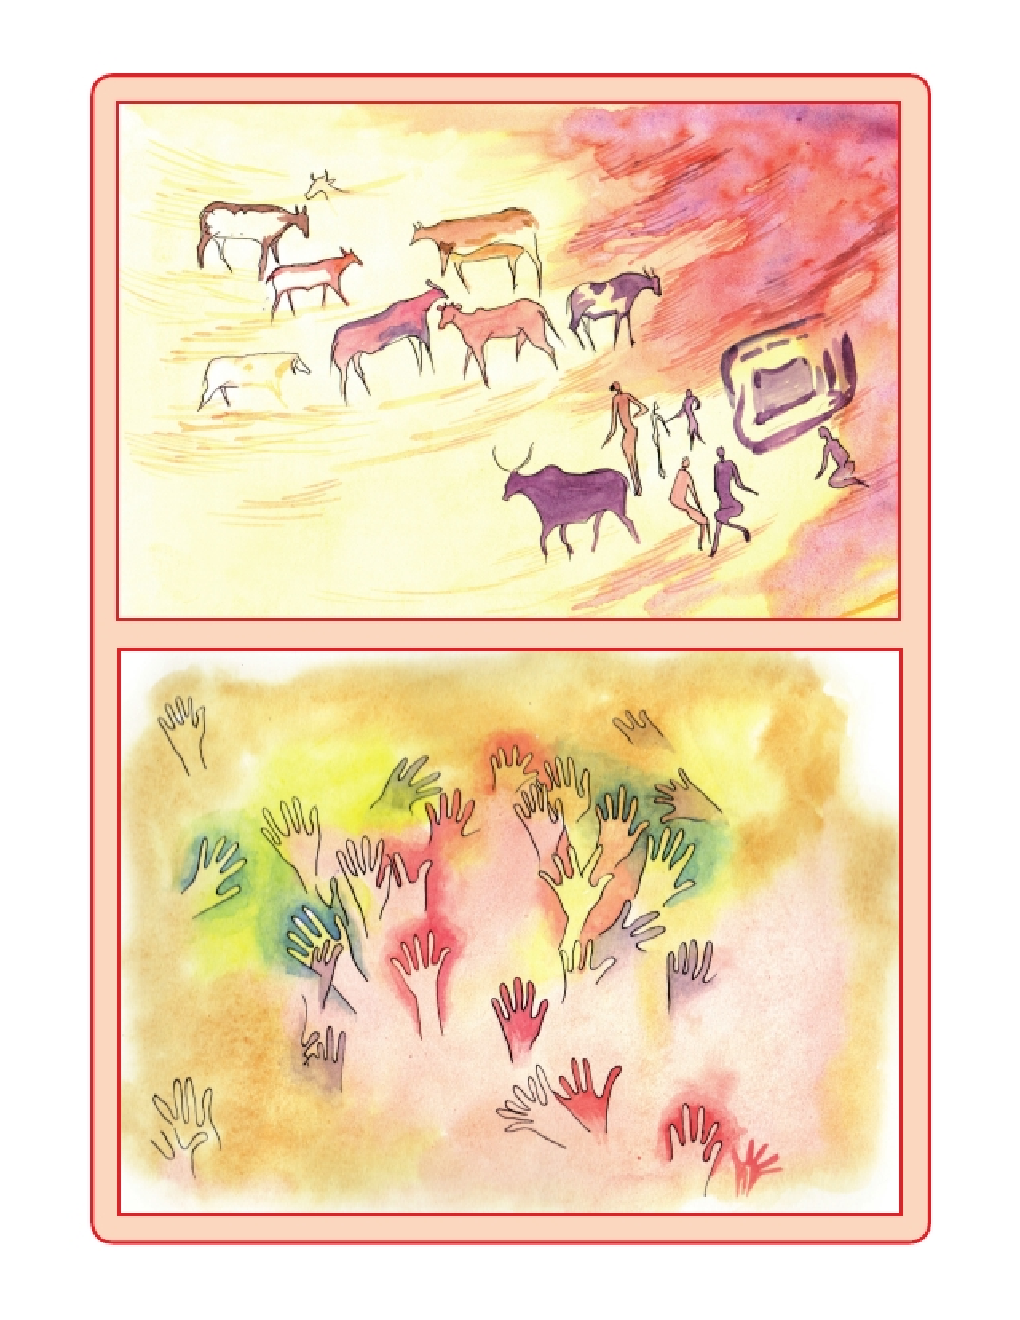 Maharashtra School Textbook How We Come To Be (Environmental Studies Part-2) For Class-5 - Page 3